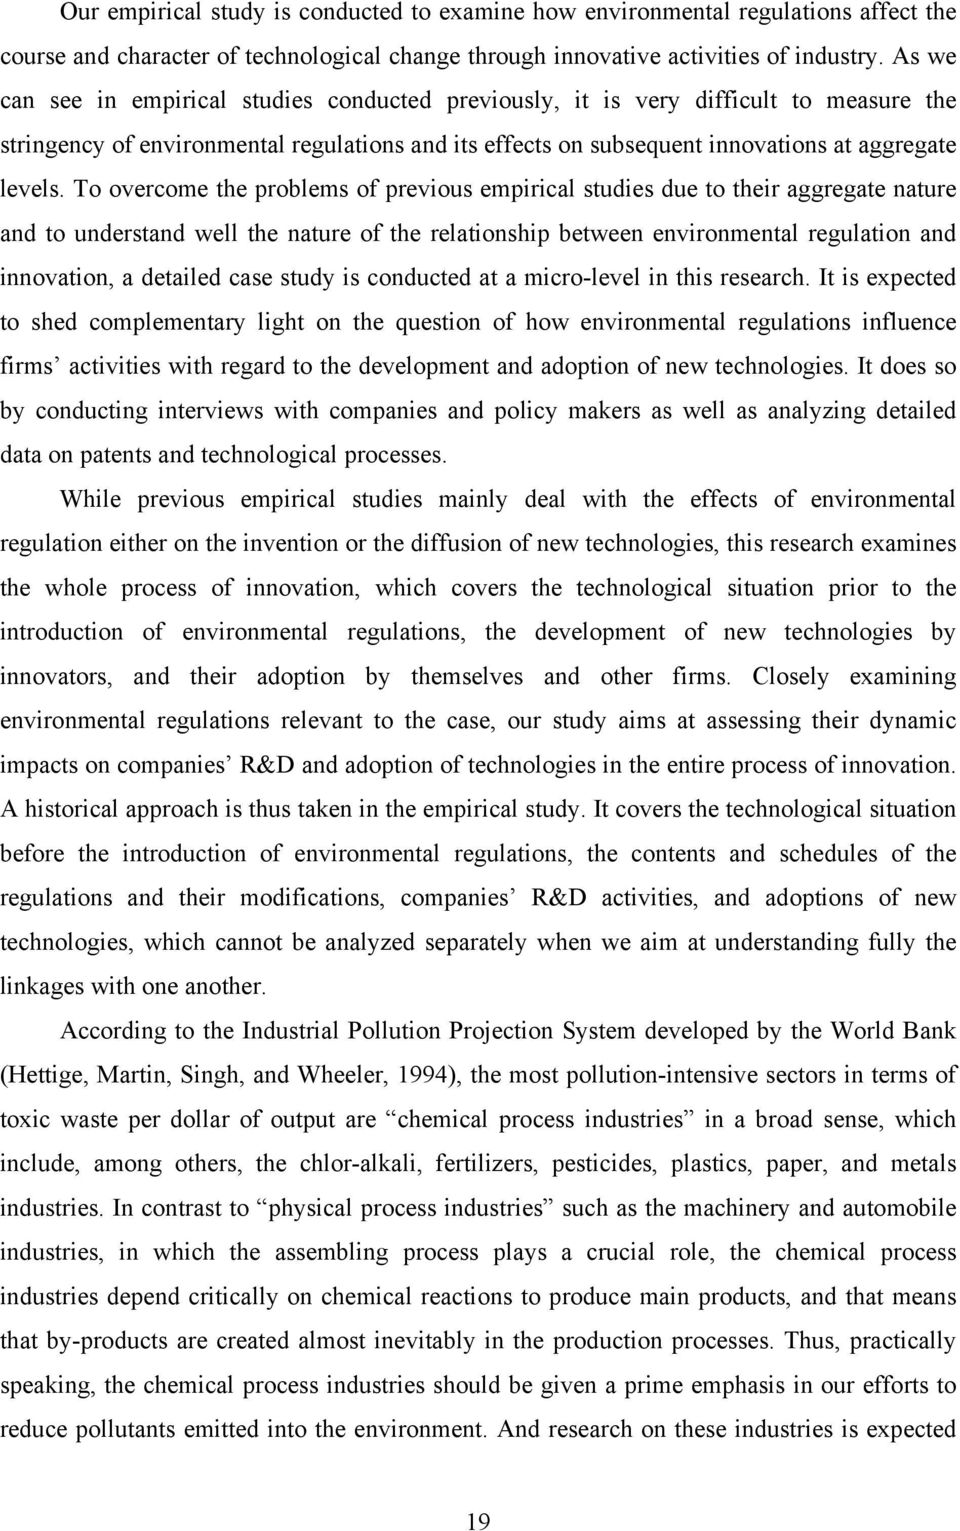 To overcome the problems of previous empirical studies due to their aggregate nature and to understand well the nature of the relationship between environmental regulation and innovation, a detailed